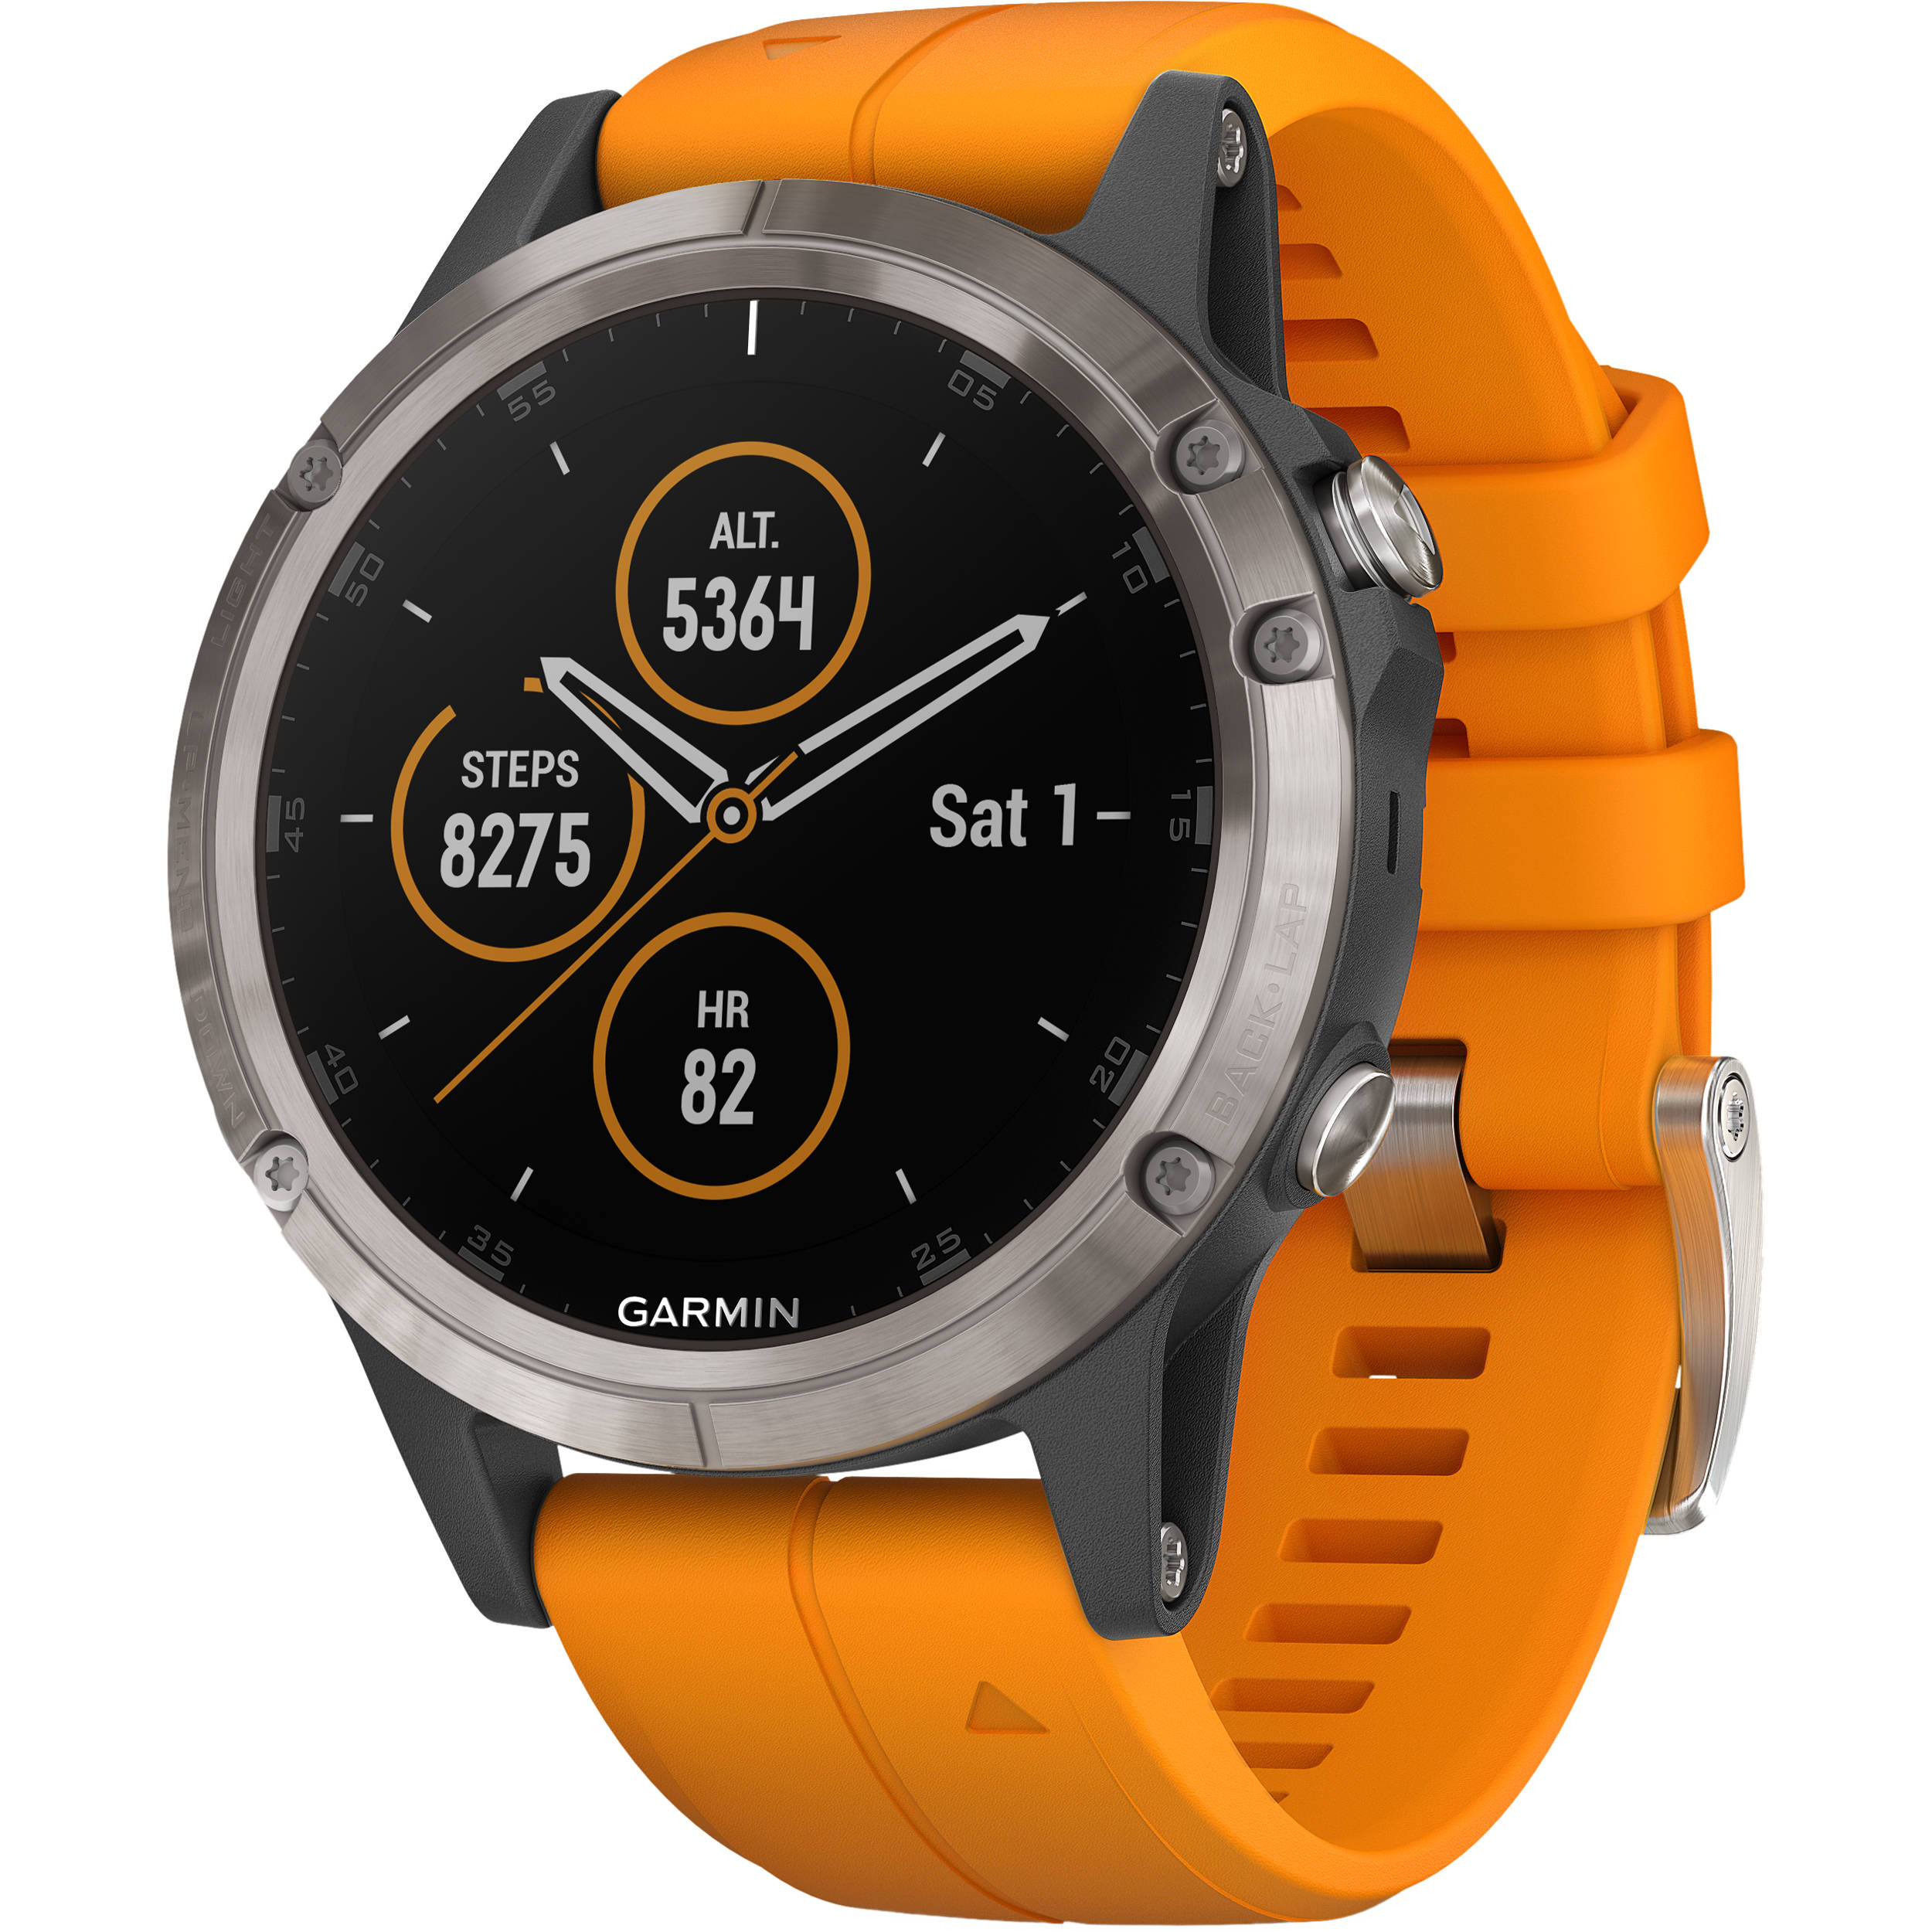 how to add activity to fenix sapphire